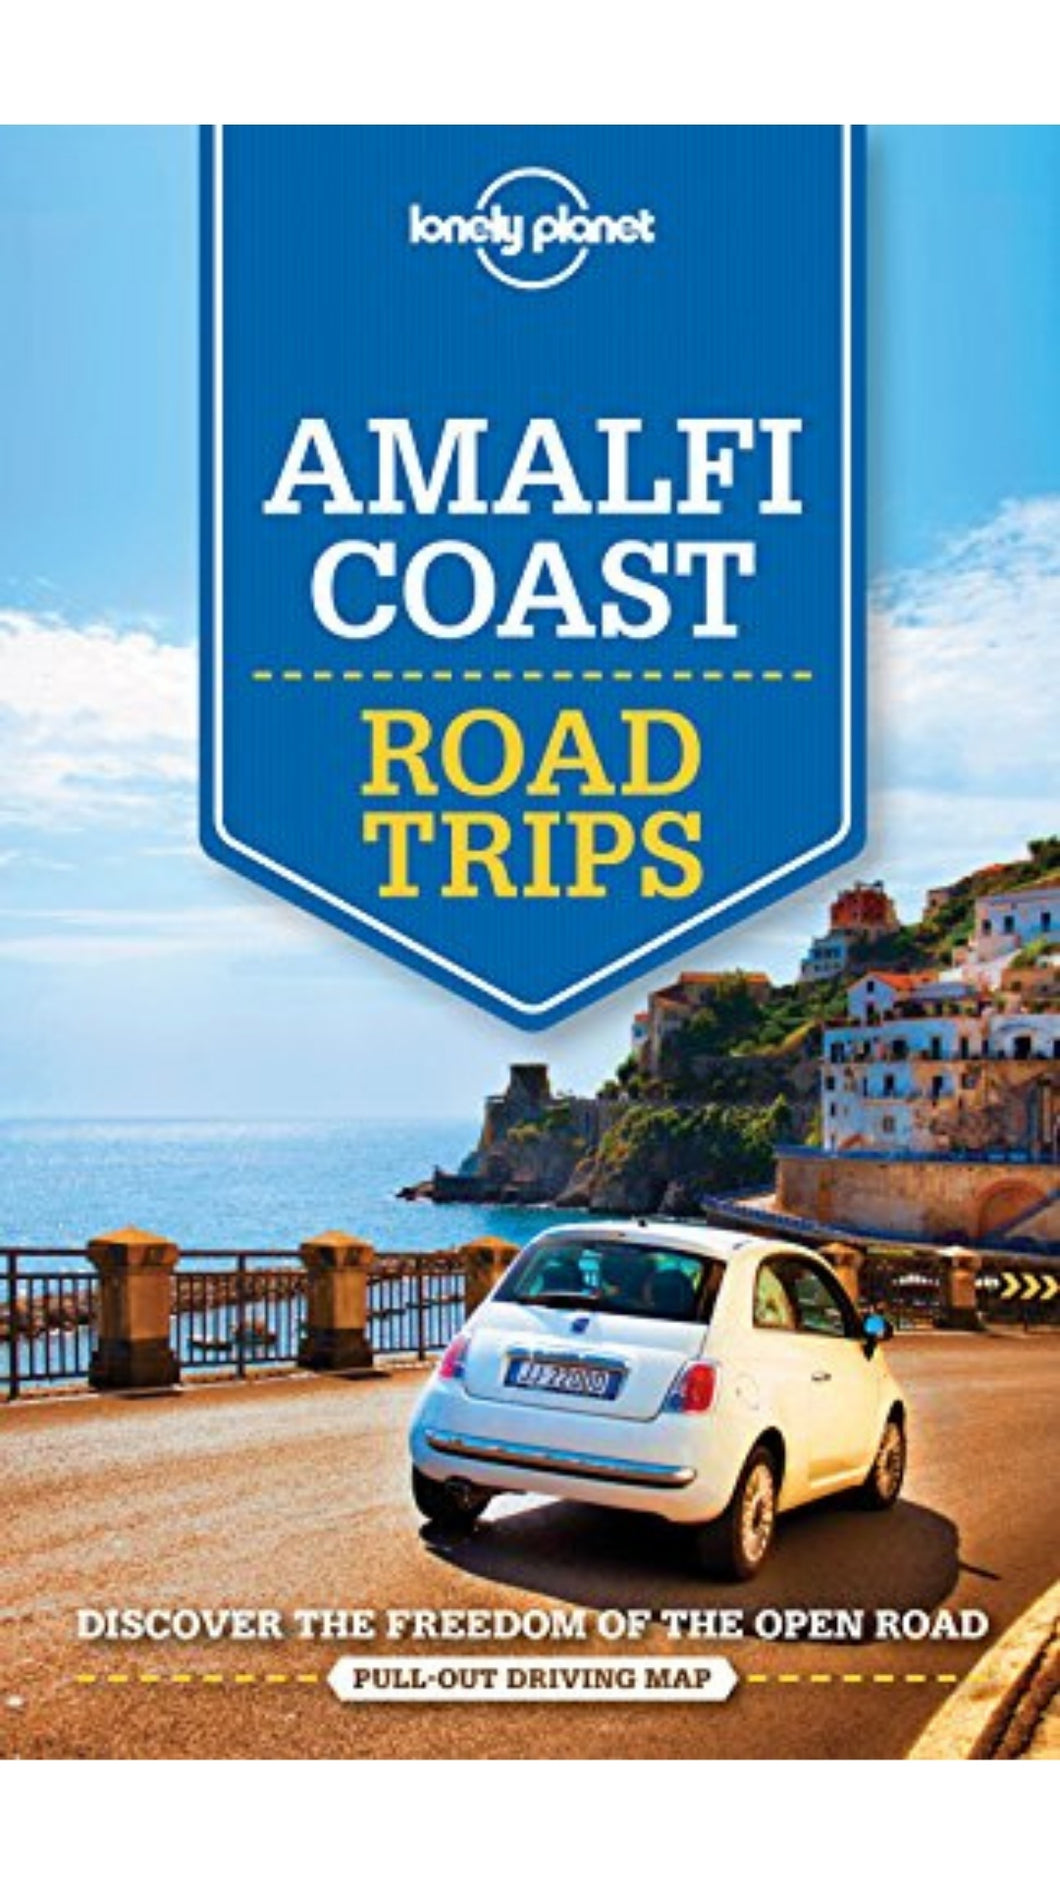 Amalfi Coast Road Trips